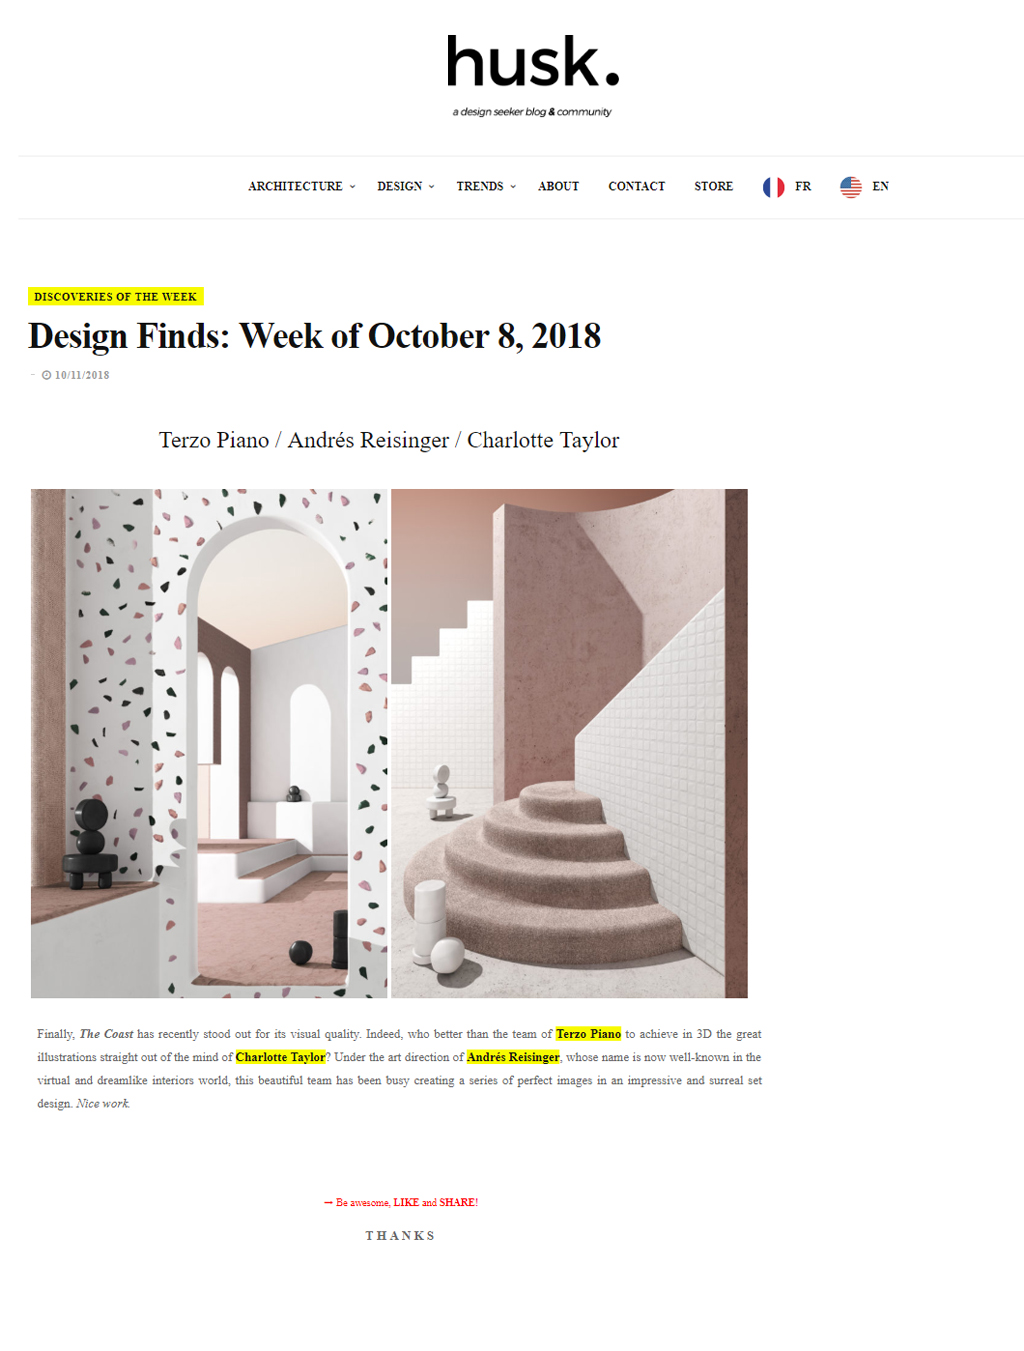 """Husk Design Blog - """"The Coast""""